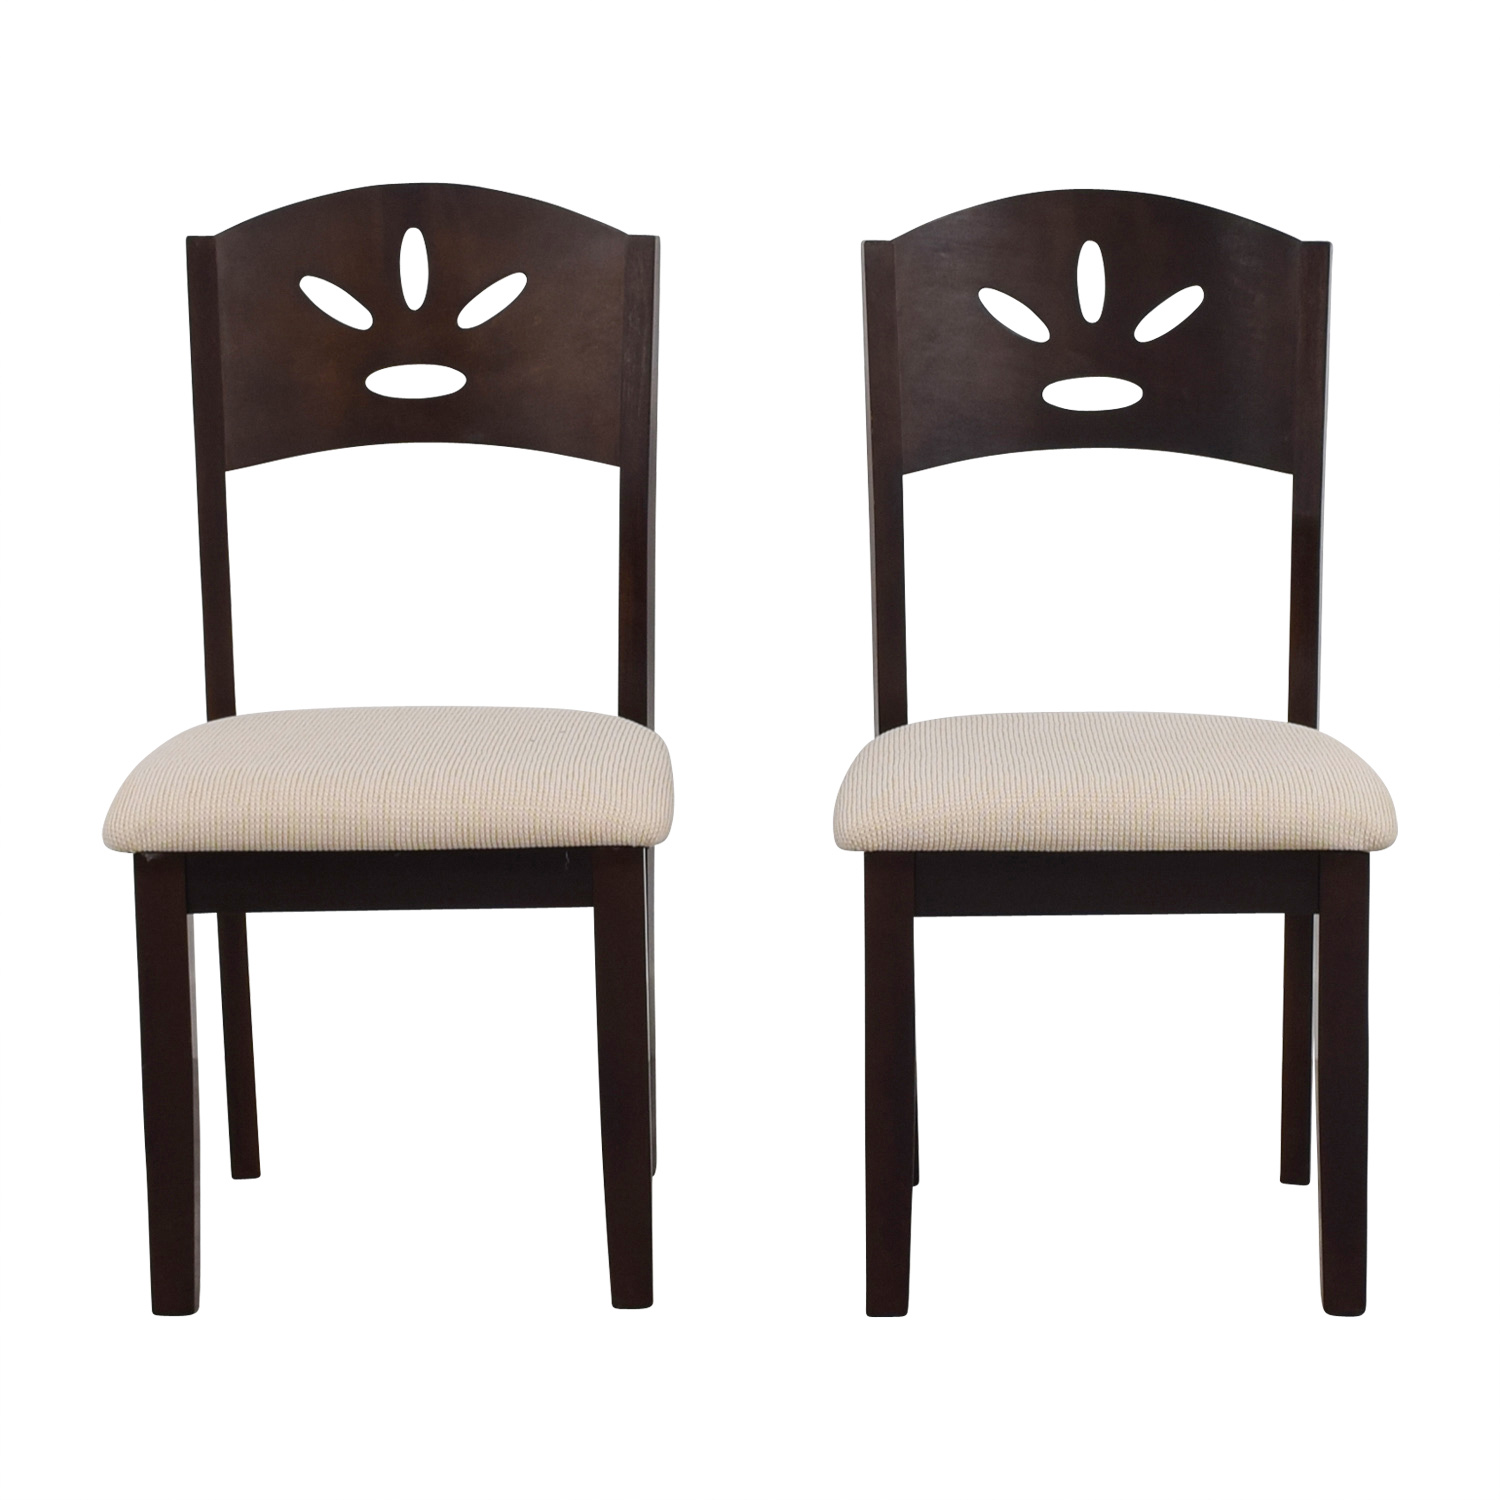 Off White and Wood Dining Chairs coupon